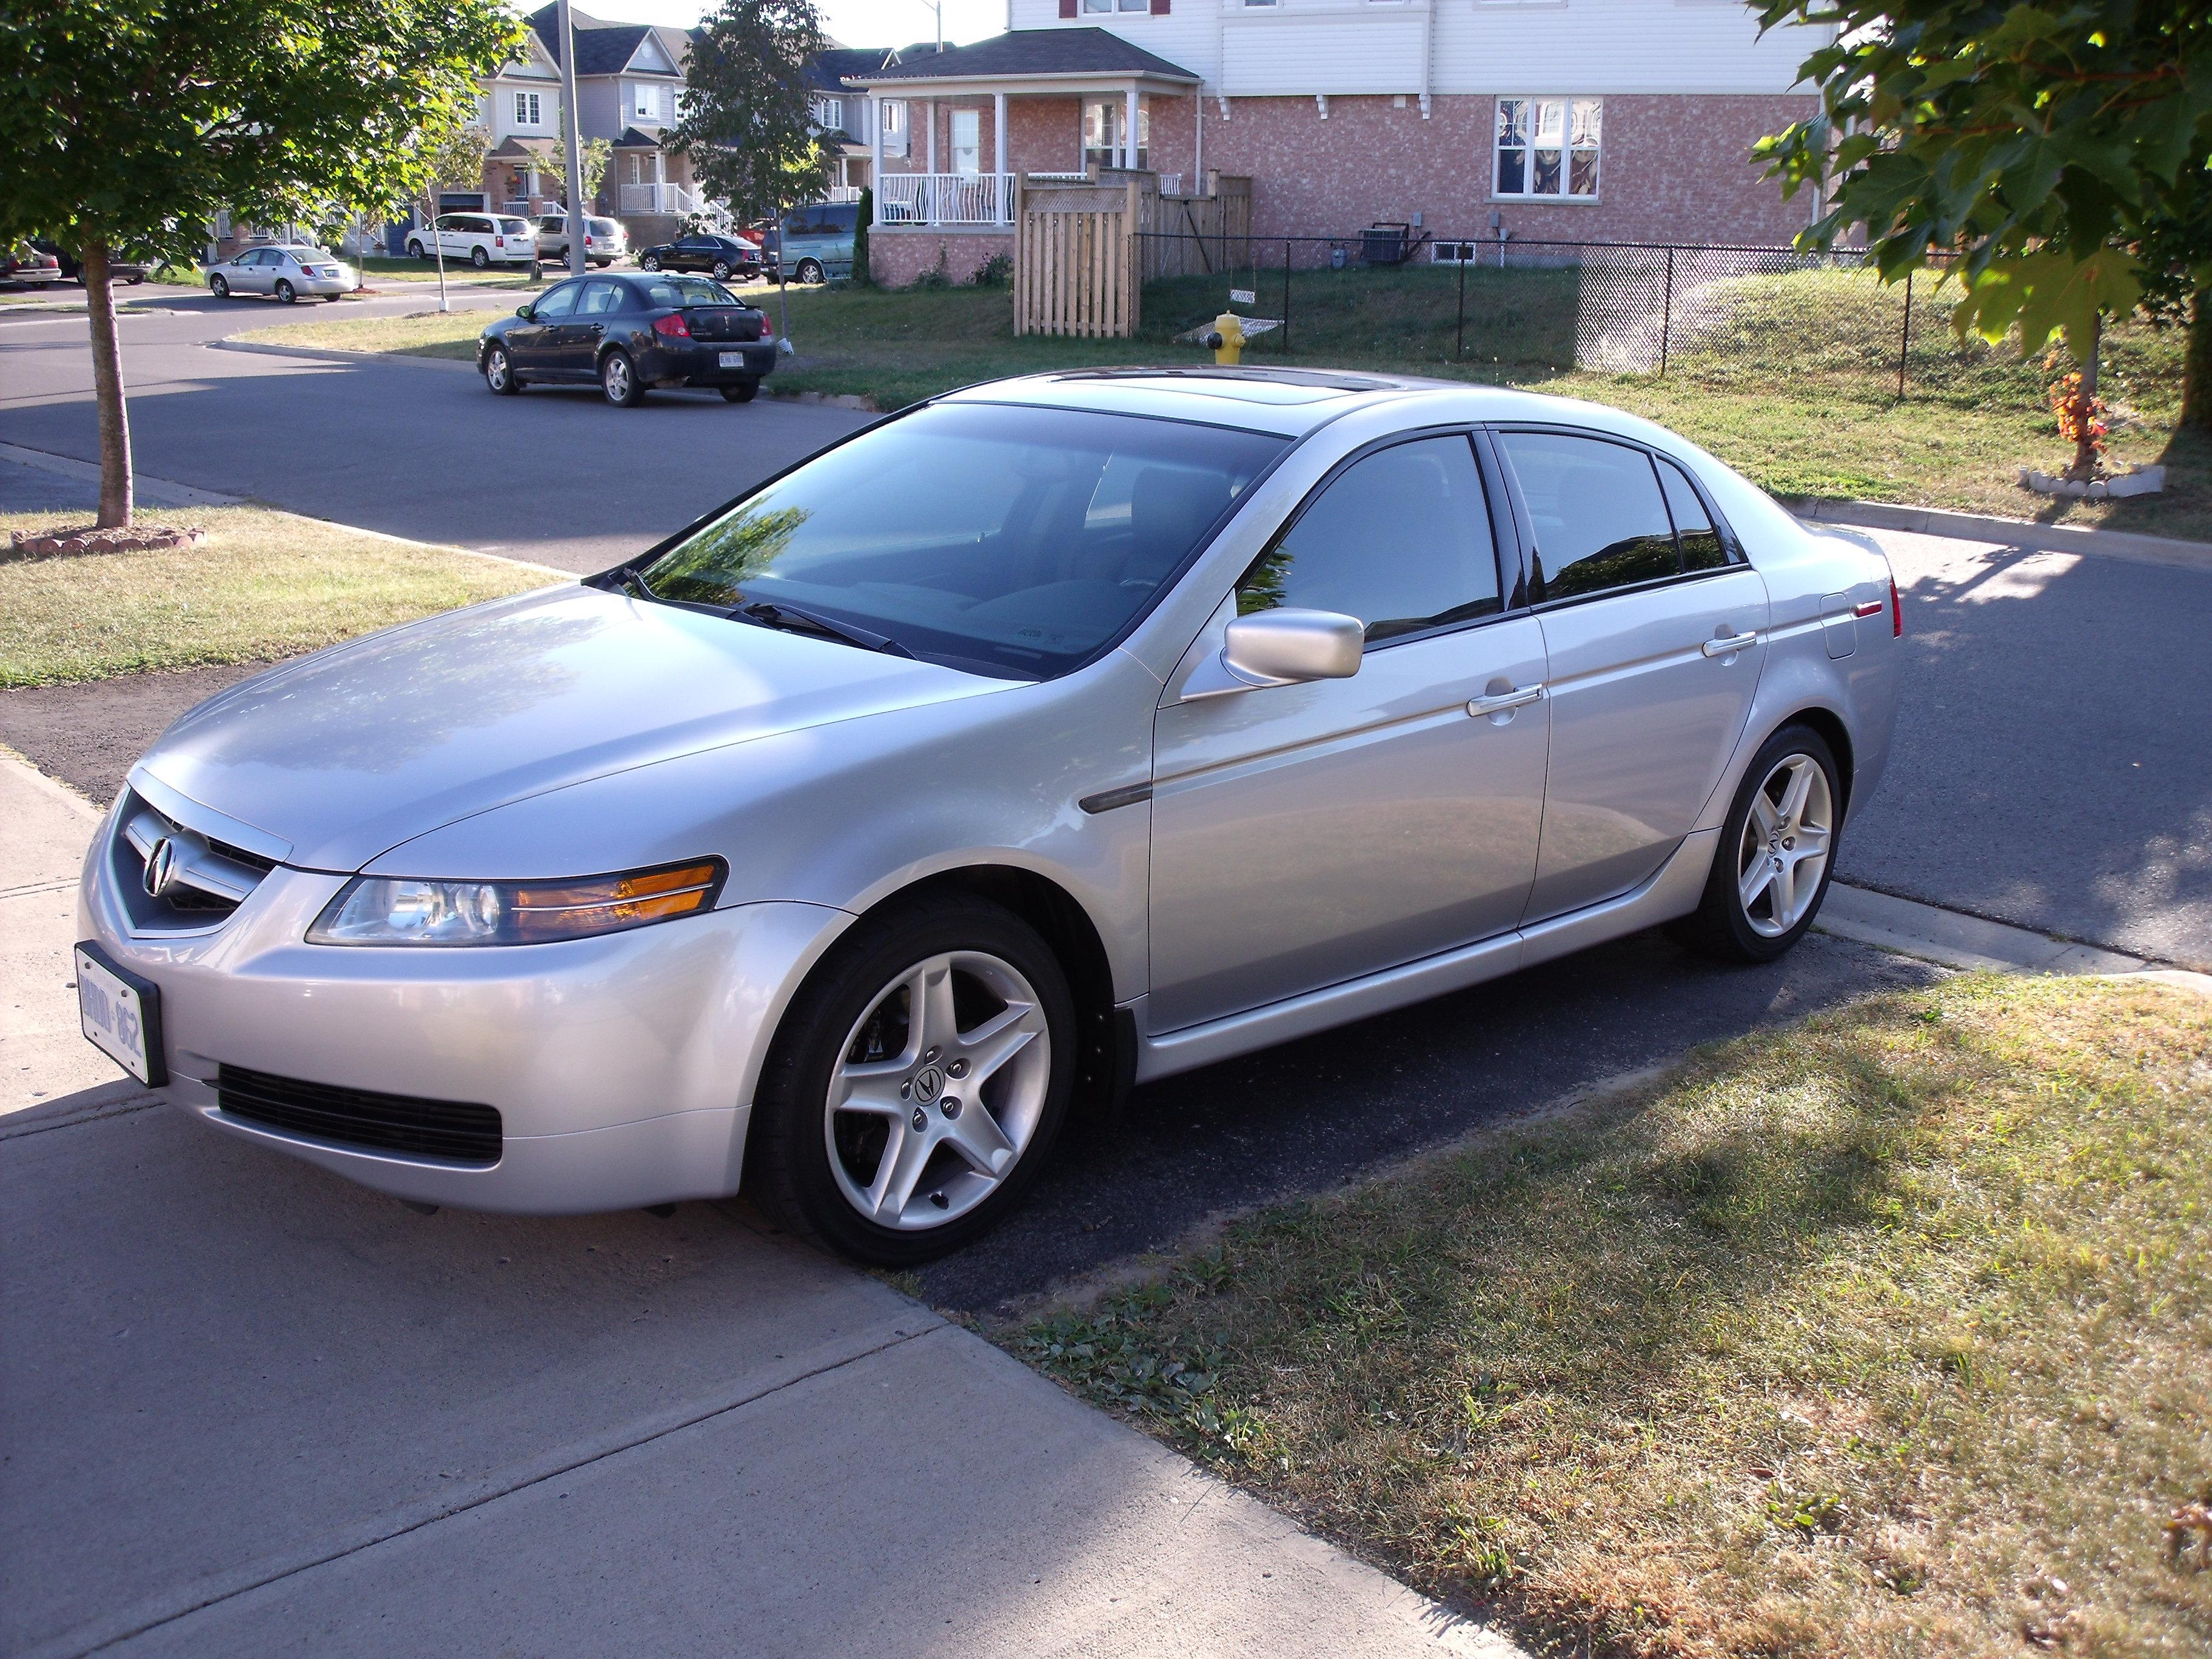 Monty Acura TL Specs Photos Modification Info At CarDomain - 2004 acura tl wheel size